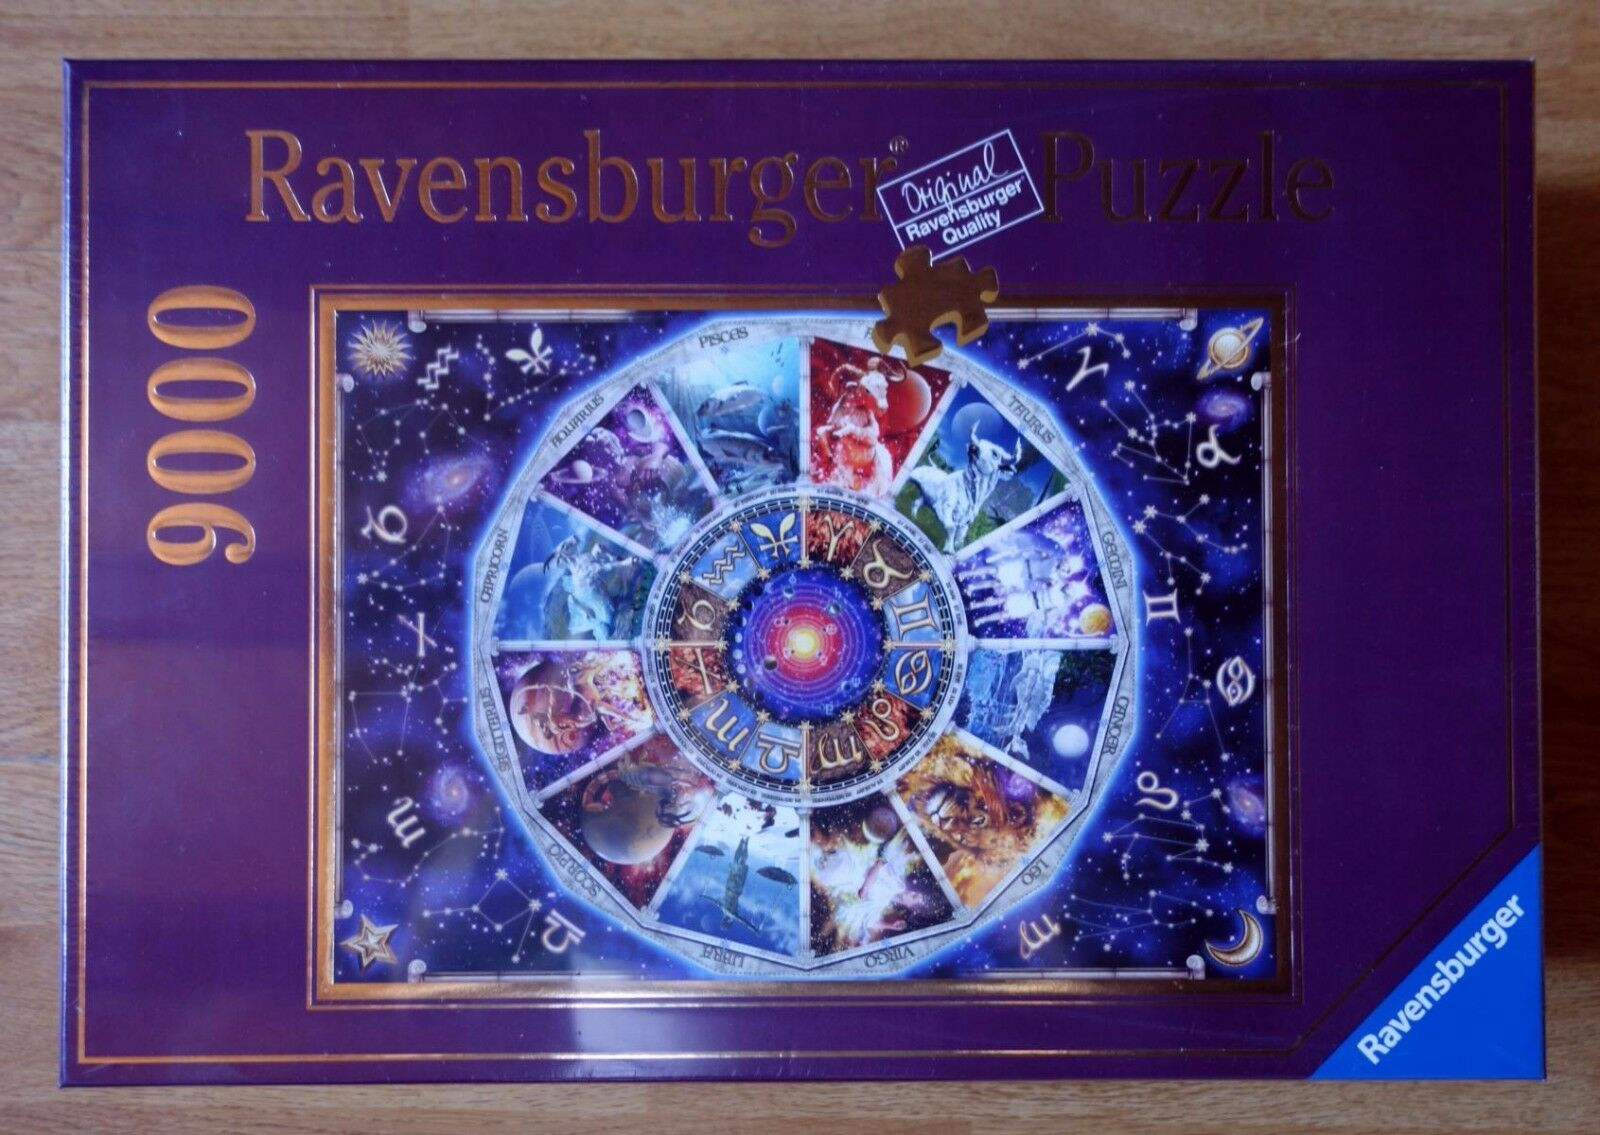 Ravensburger 9000 piece puzzle, 'Astrology' - Factory sealed